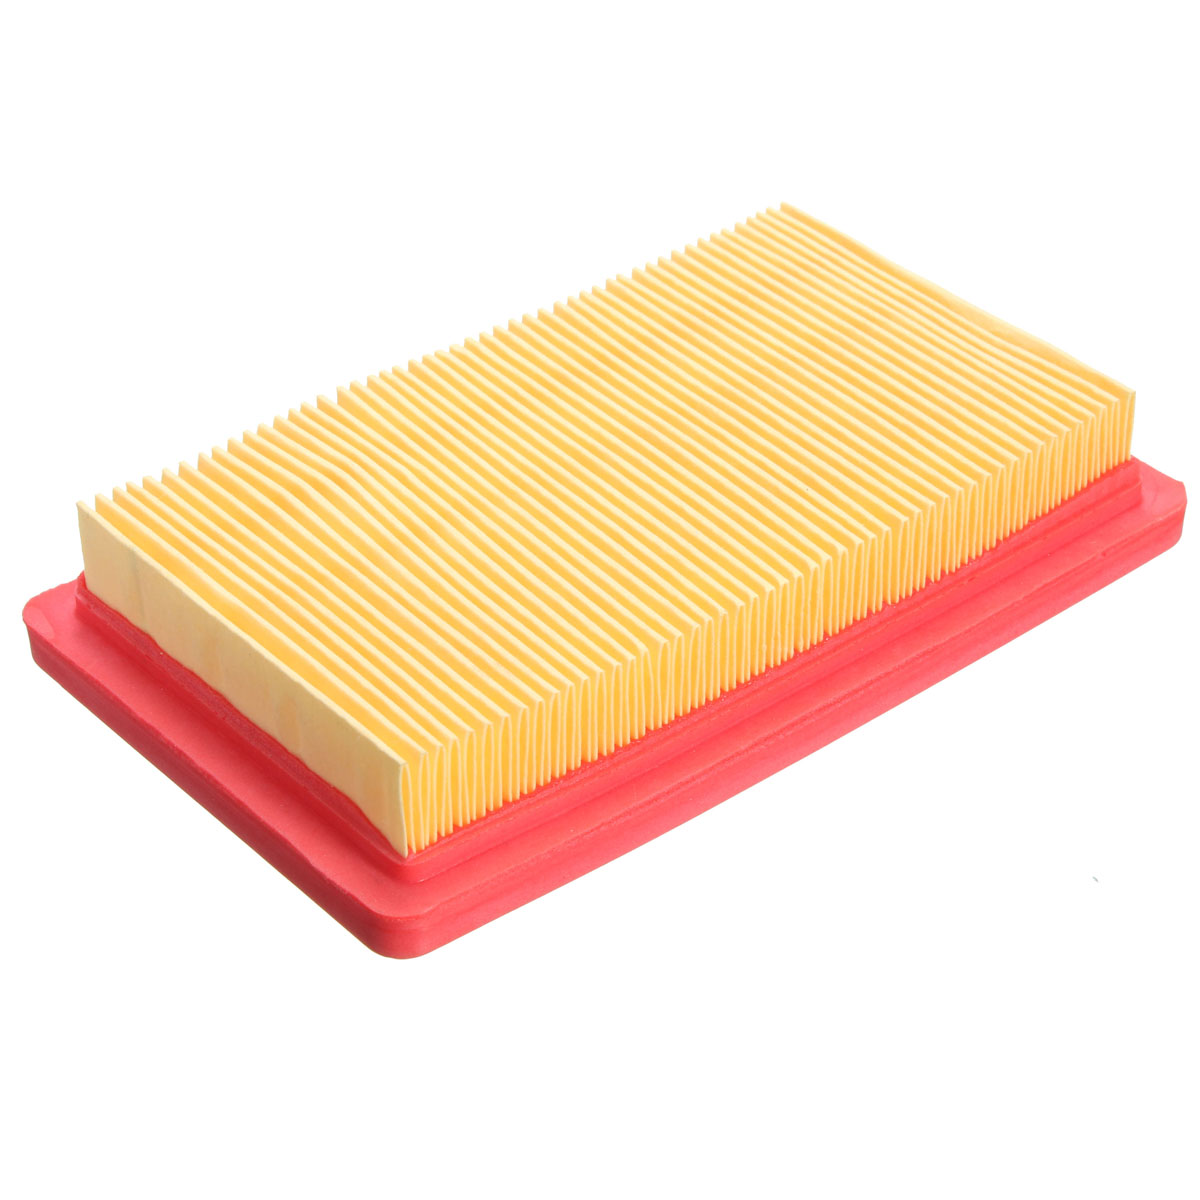 Lawnmower Air Filter For Kohler Courage Xt Series Engines Models 14 083 01 S In Filters From Automobiles Motorcycles On Aliexpress Alibaba